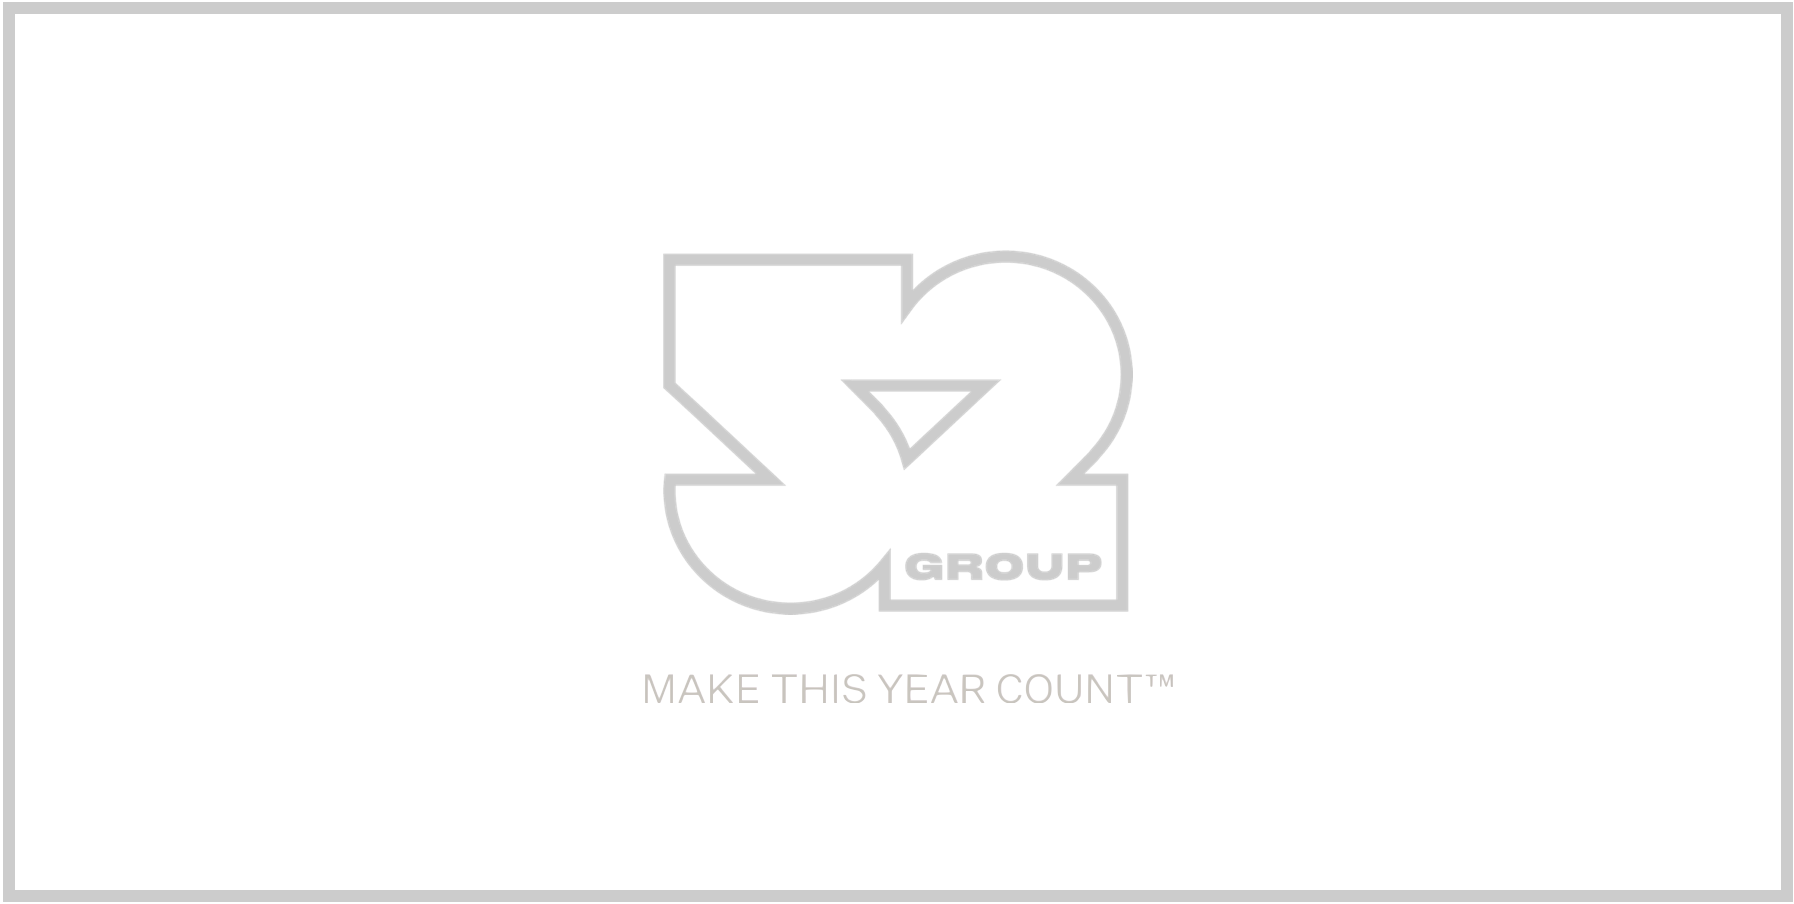 52 Group logo - make this year count